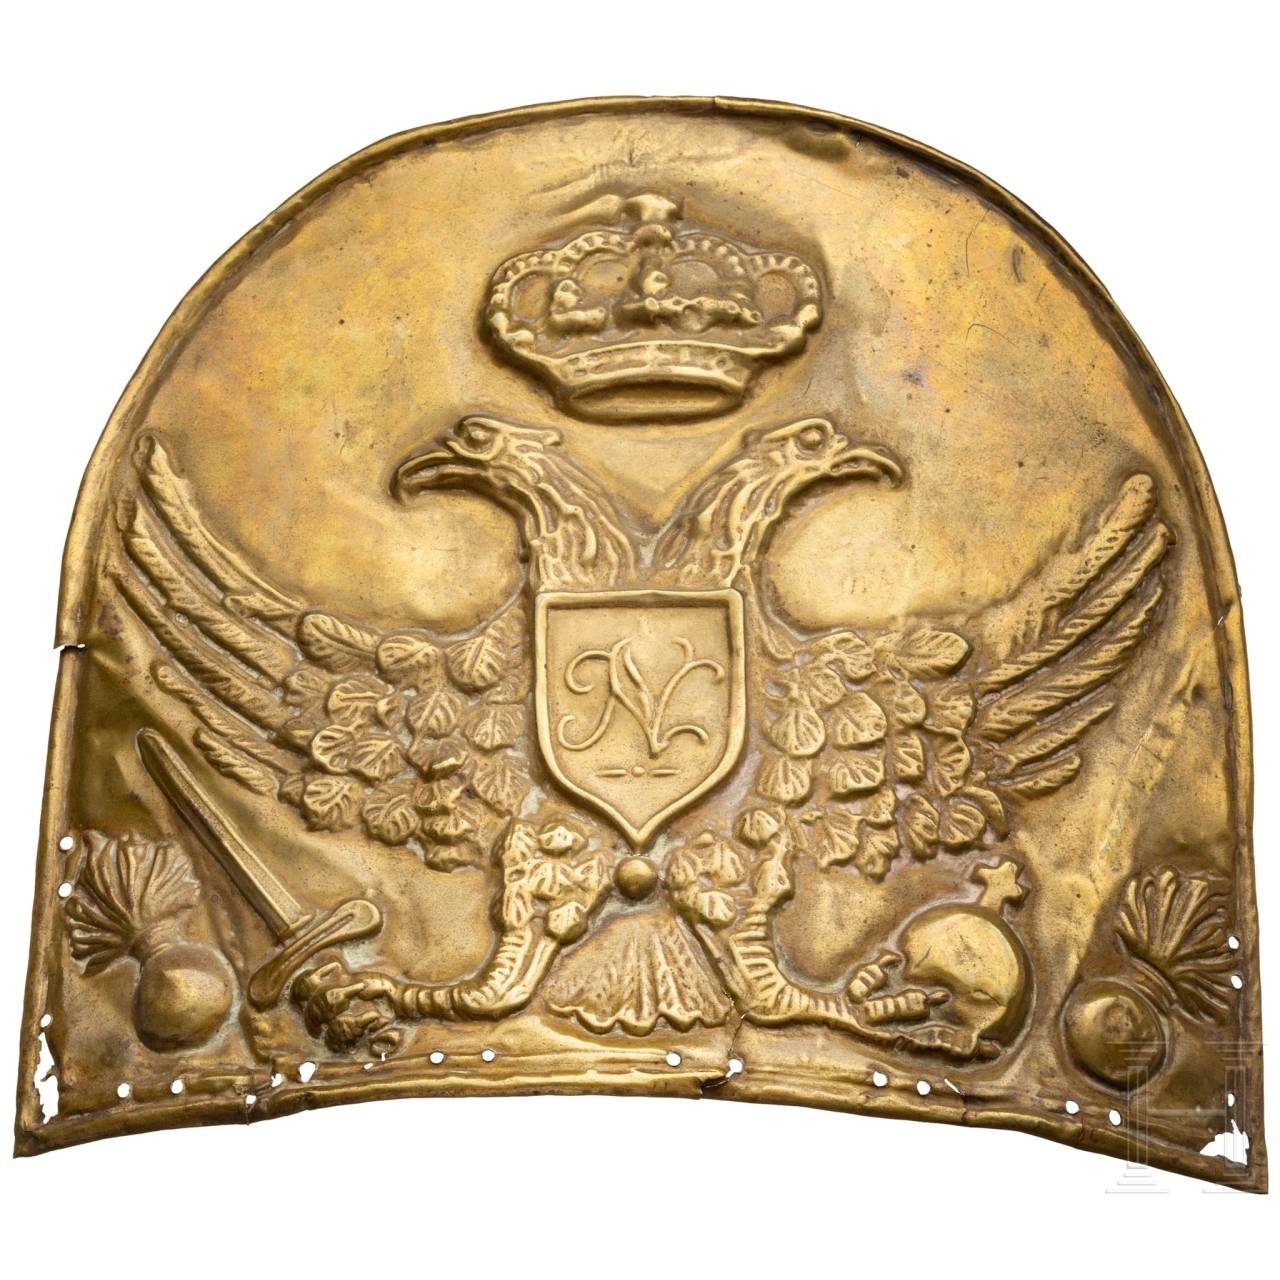 An unknown grenadier cap plate, 18th century, possibly Russian